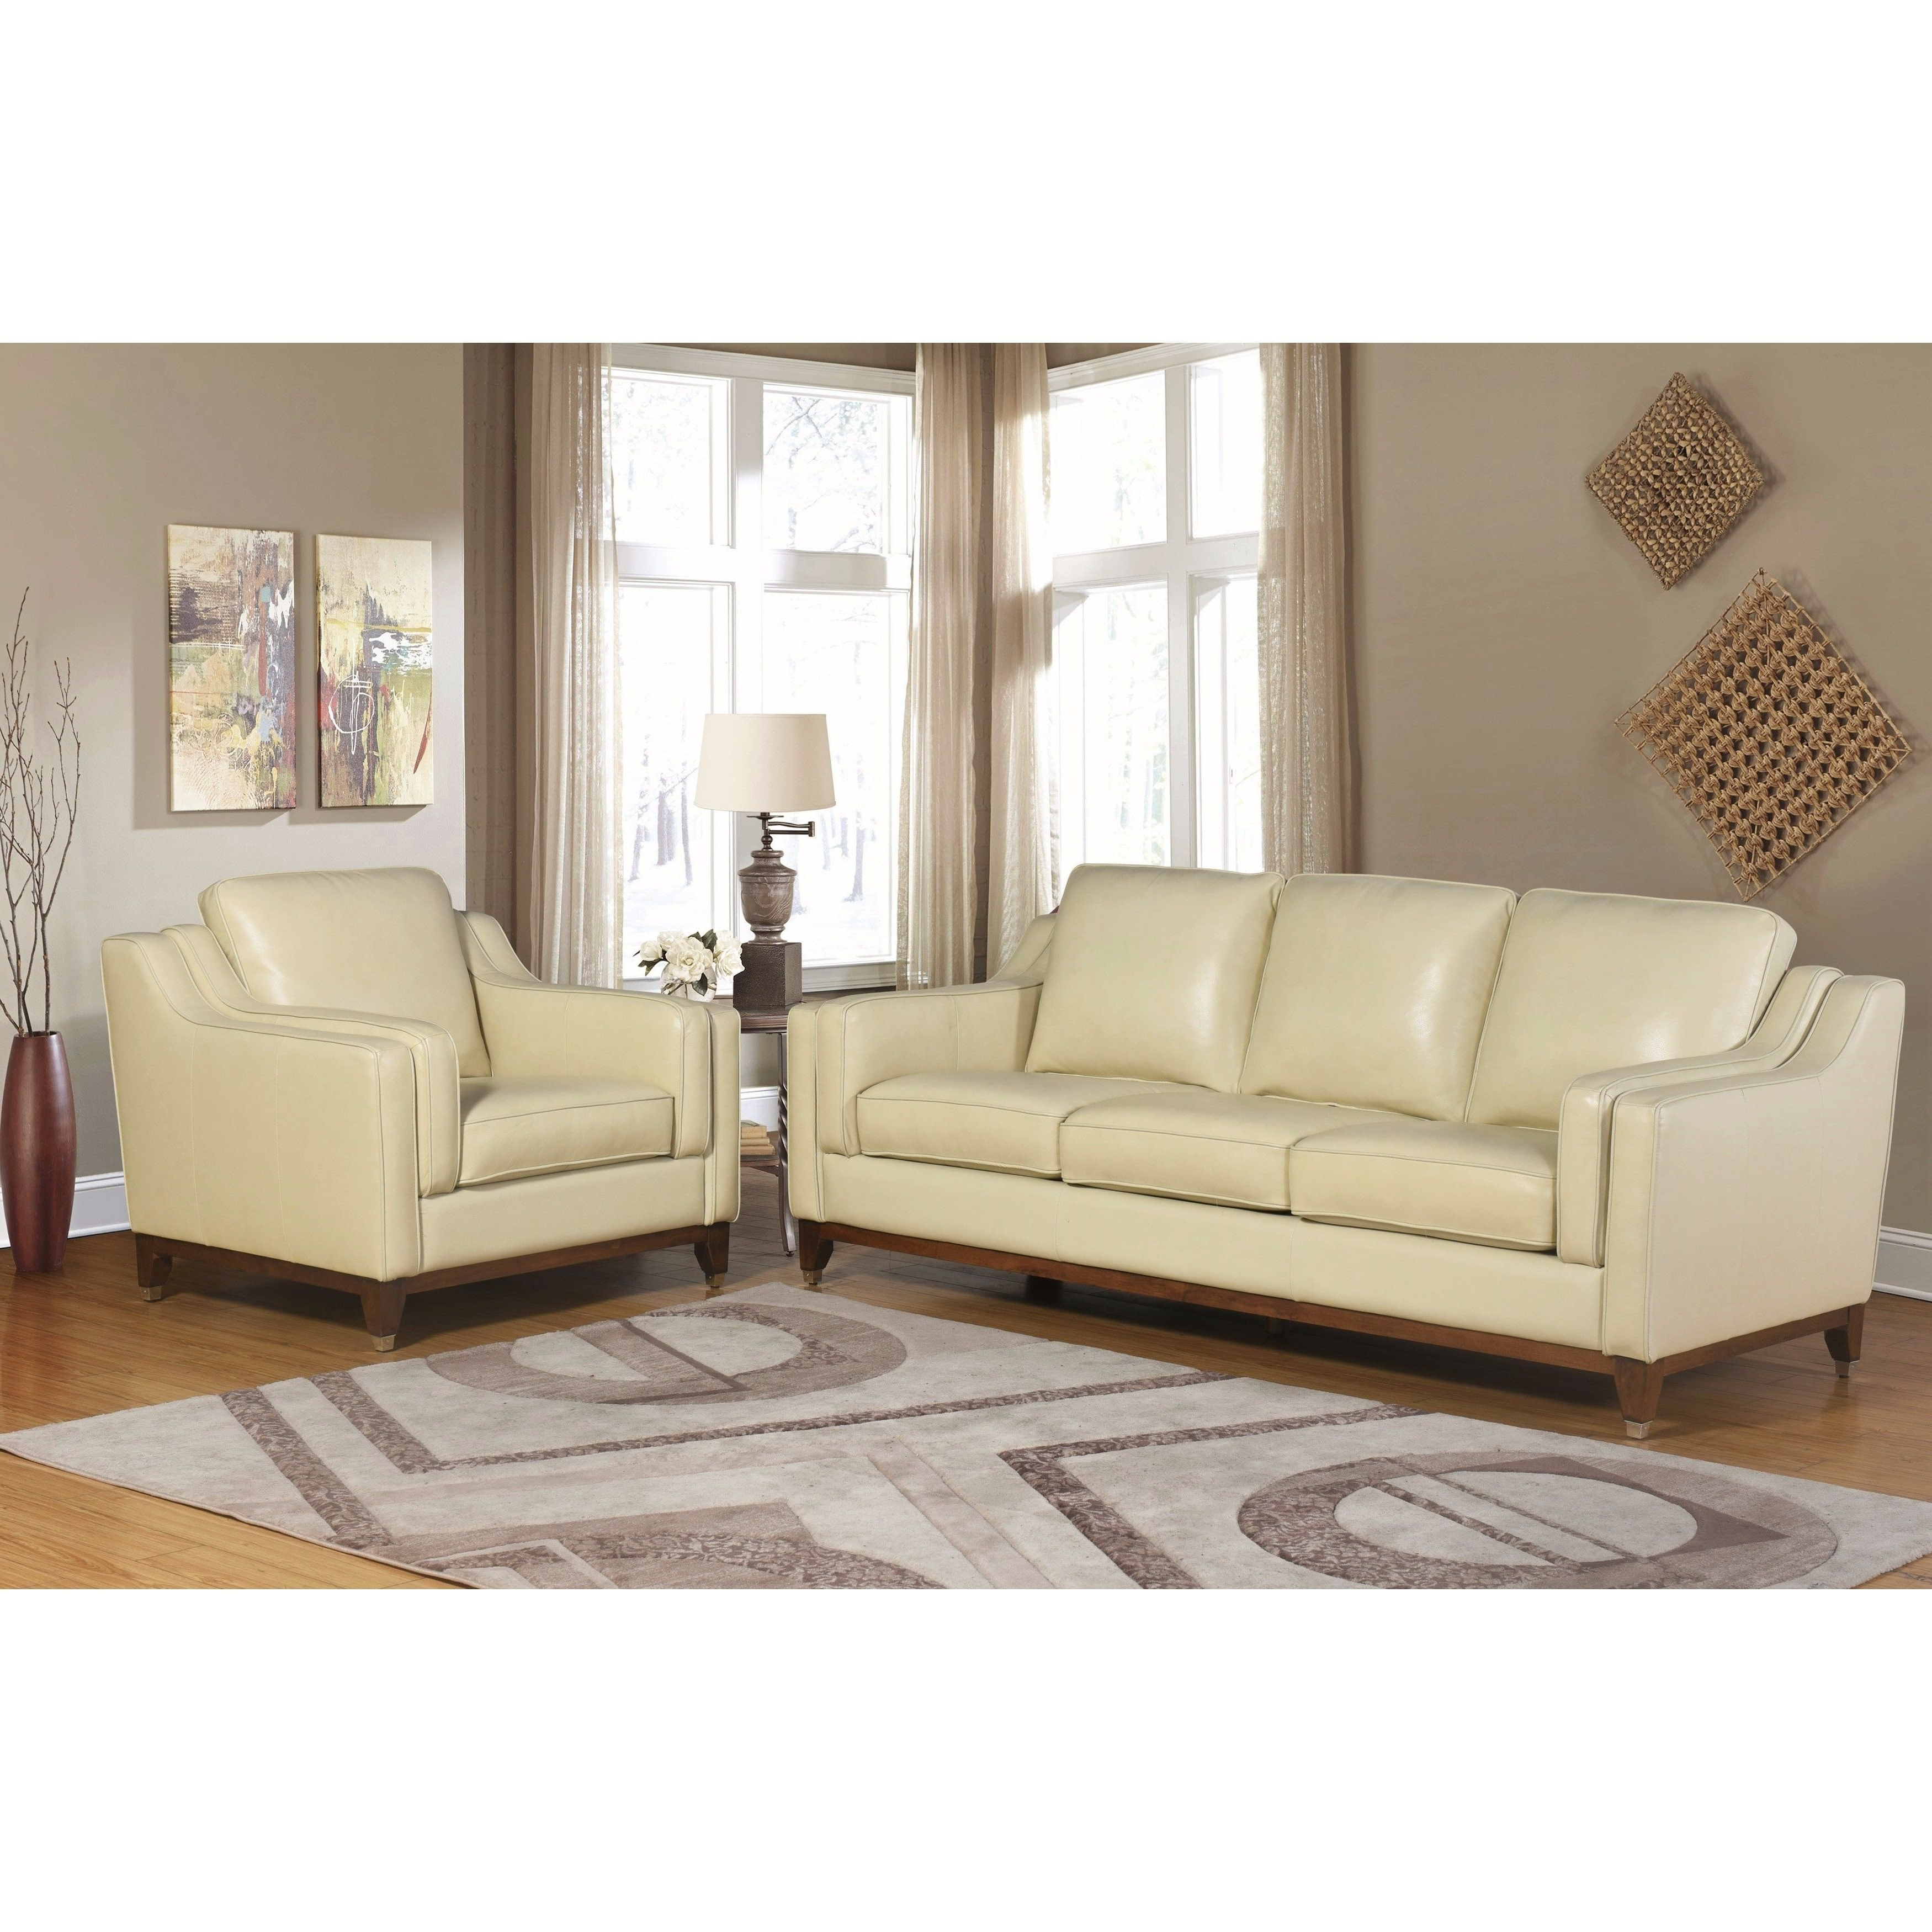 Well Liked Abbyson Allegra Cream (ivory) Top Grain Leather 2 Piece Seating Set In Kristen Silver Grey 6 Piece Power Reclining Sectionals (View 12 of 20)